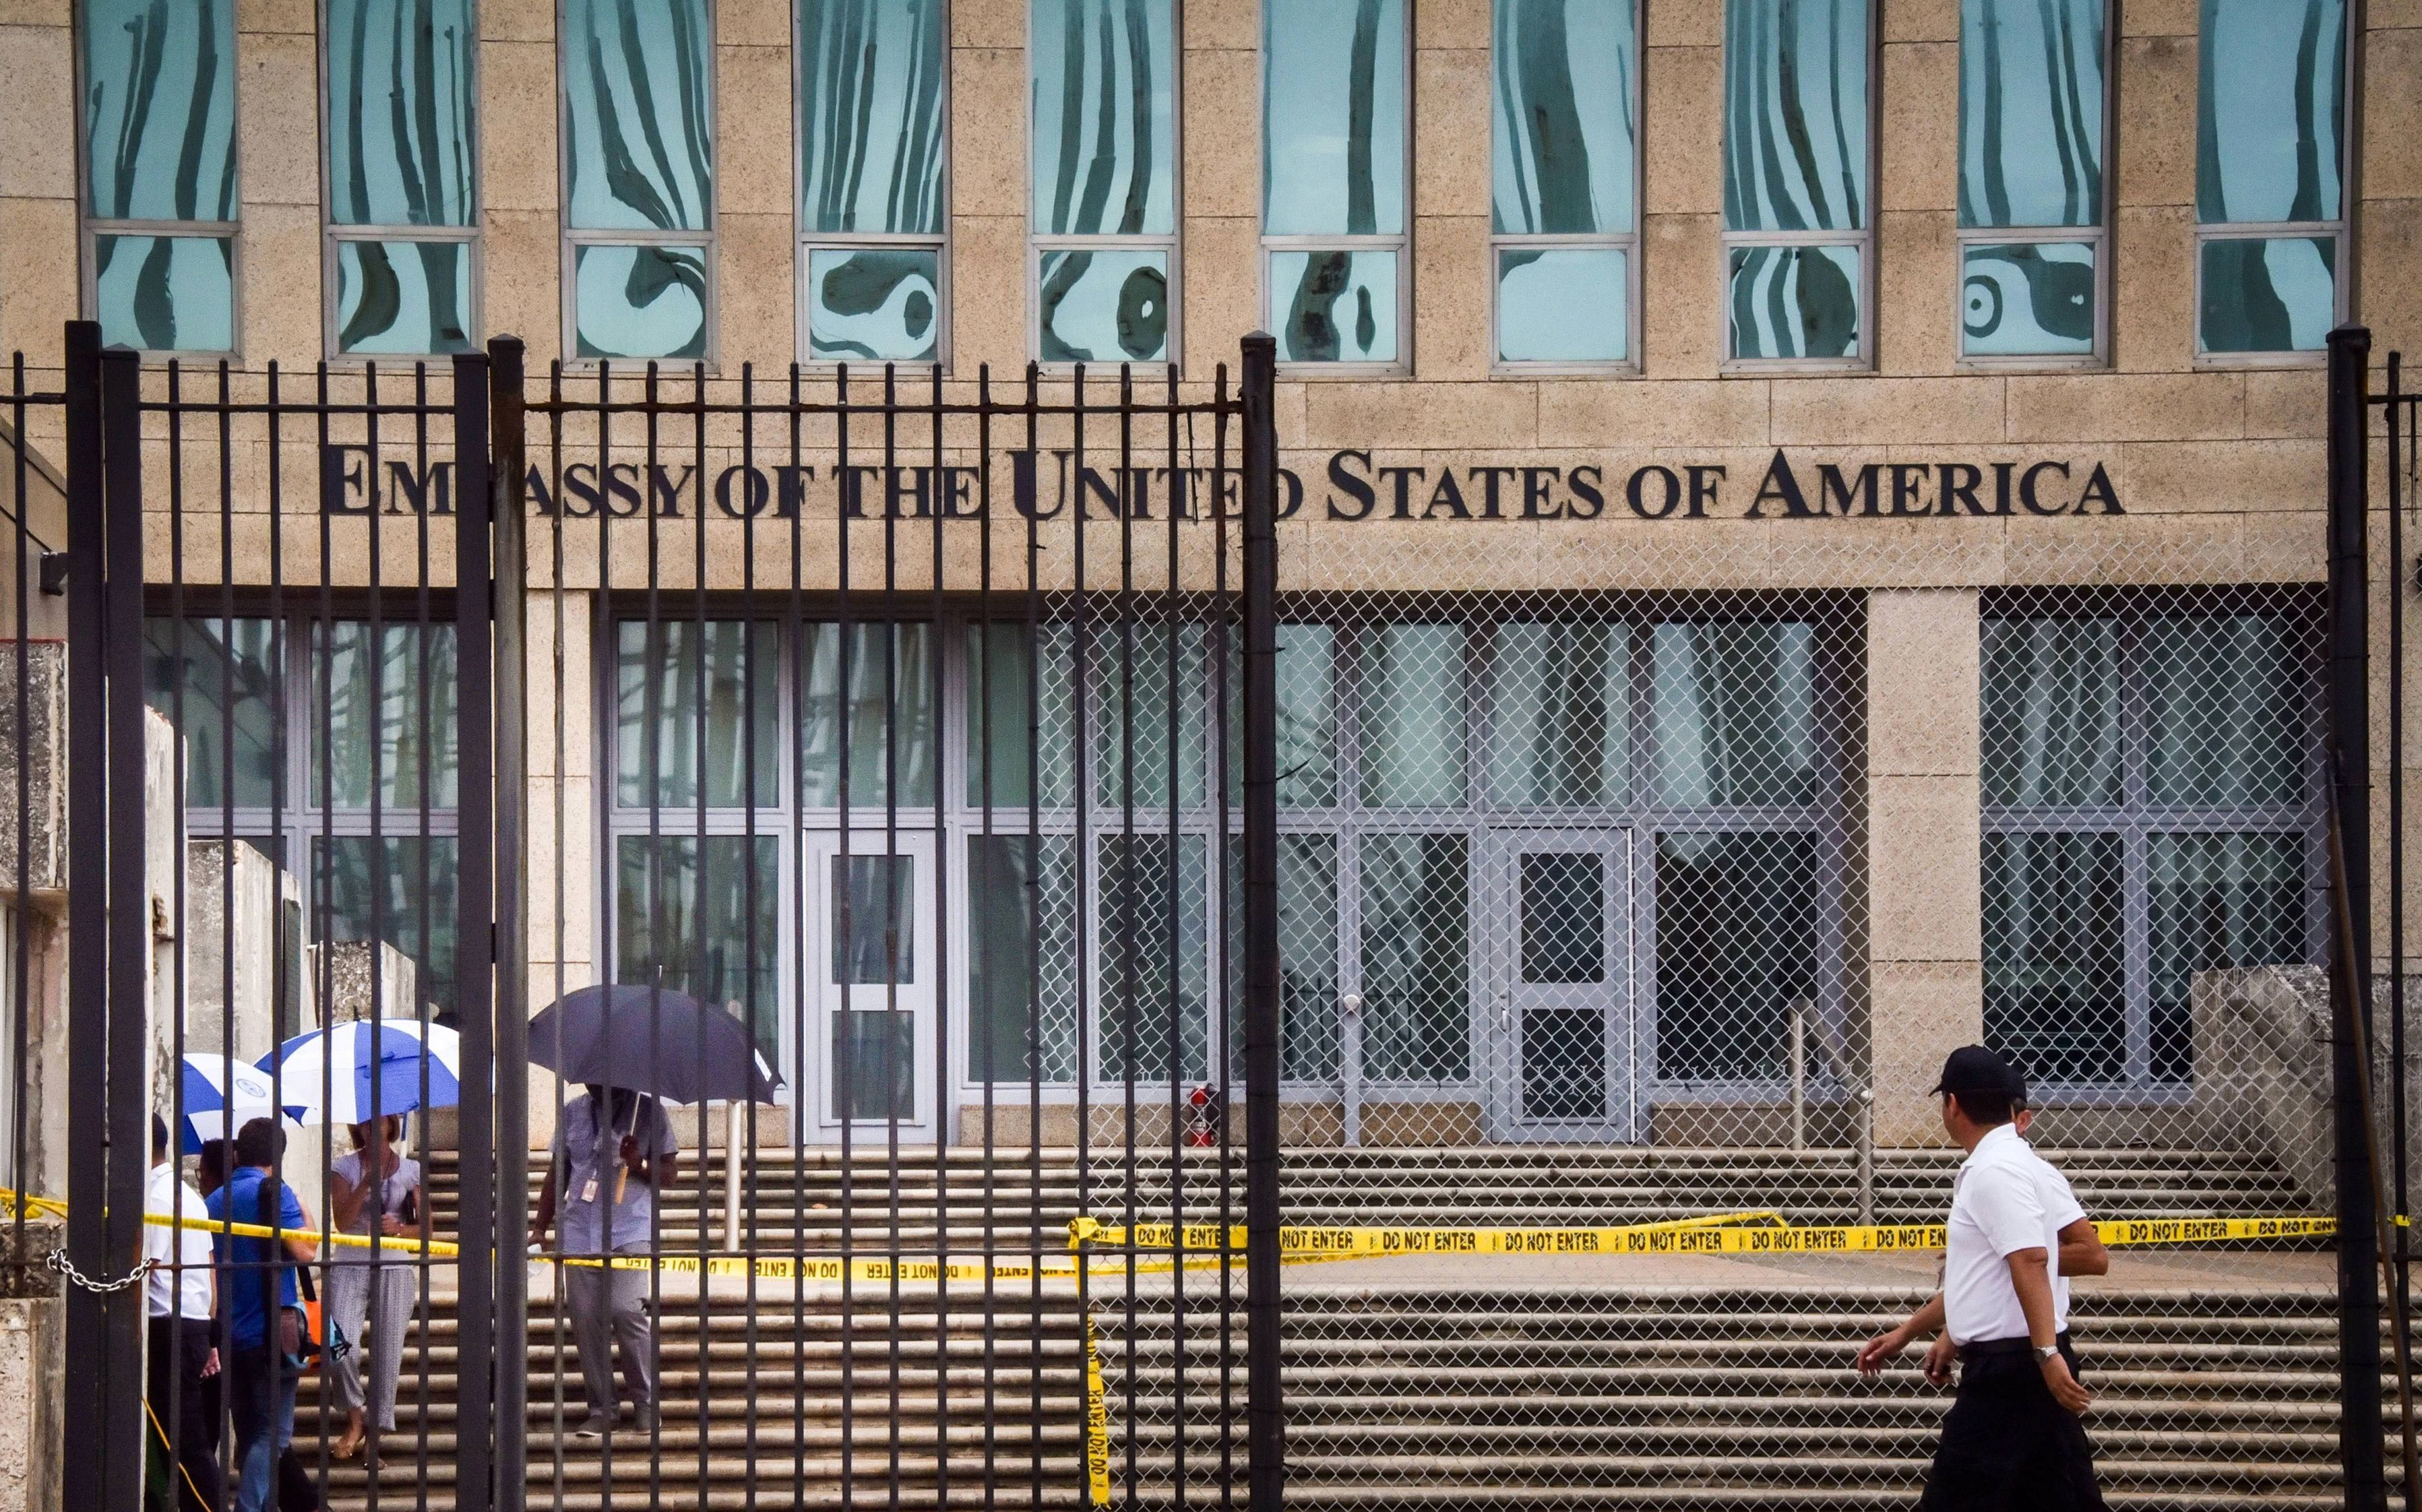 Microwaves are 'main suspect' in attack on United States diplomats in Cuba